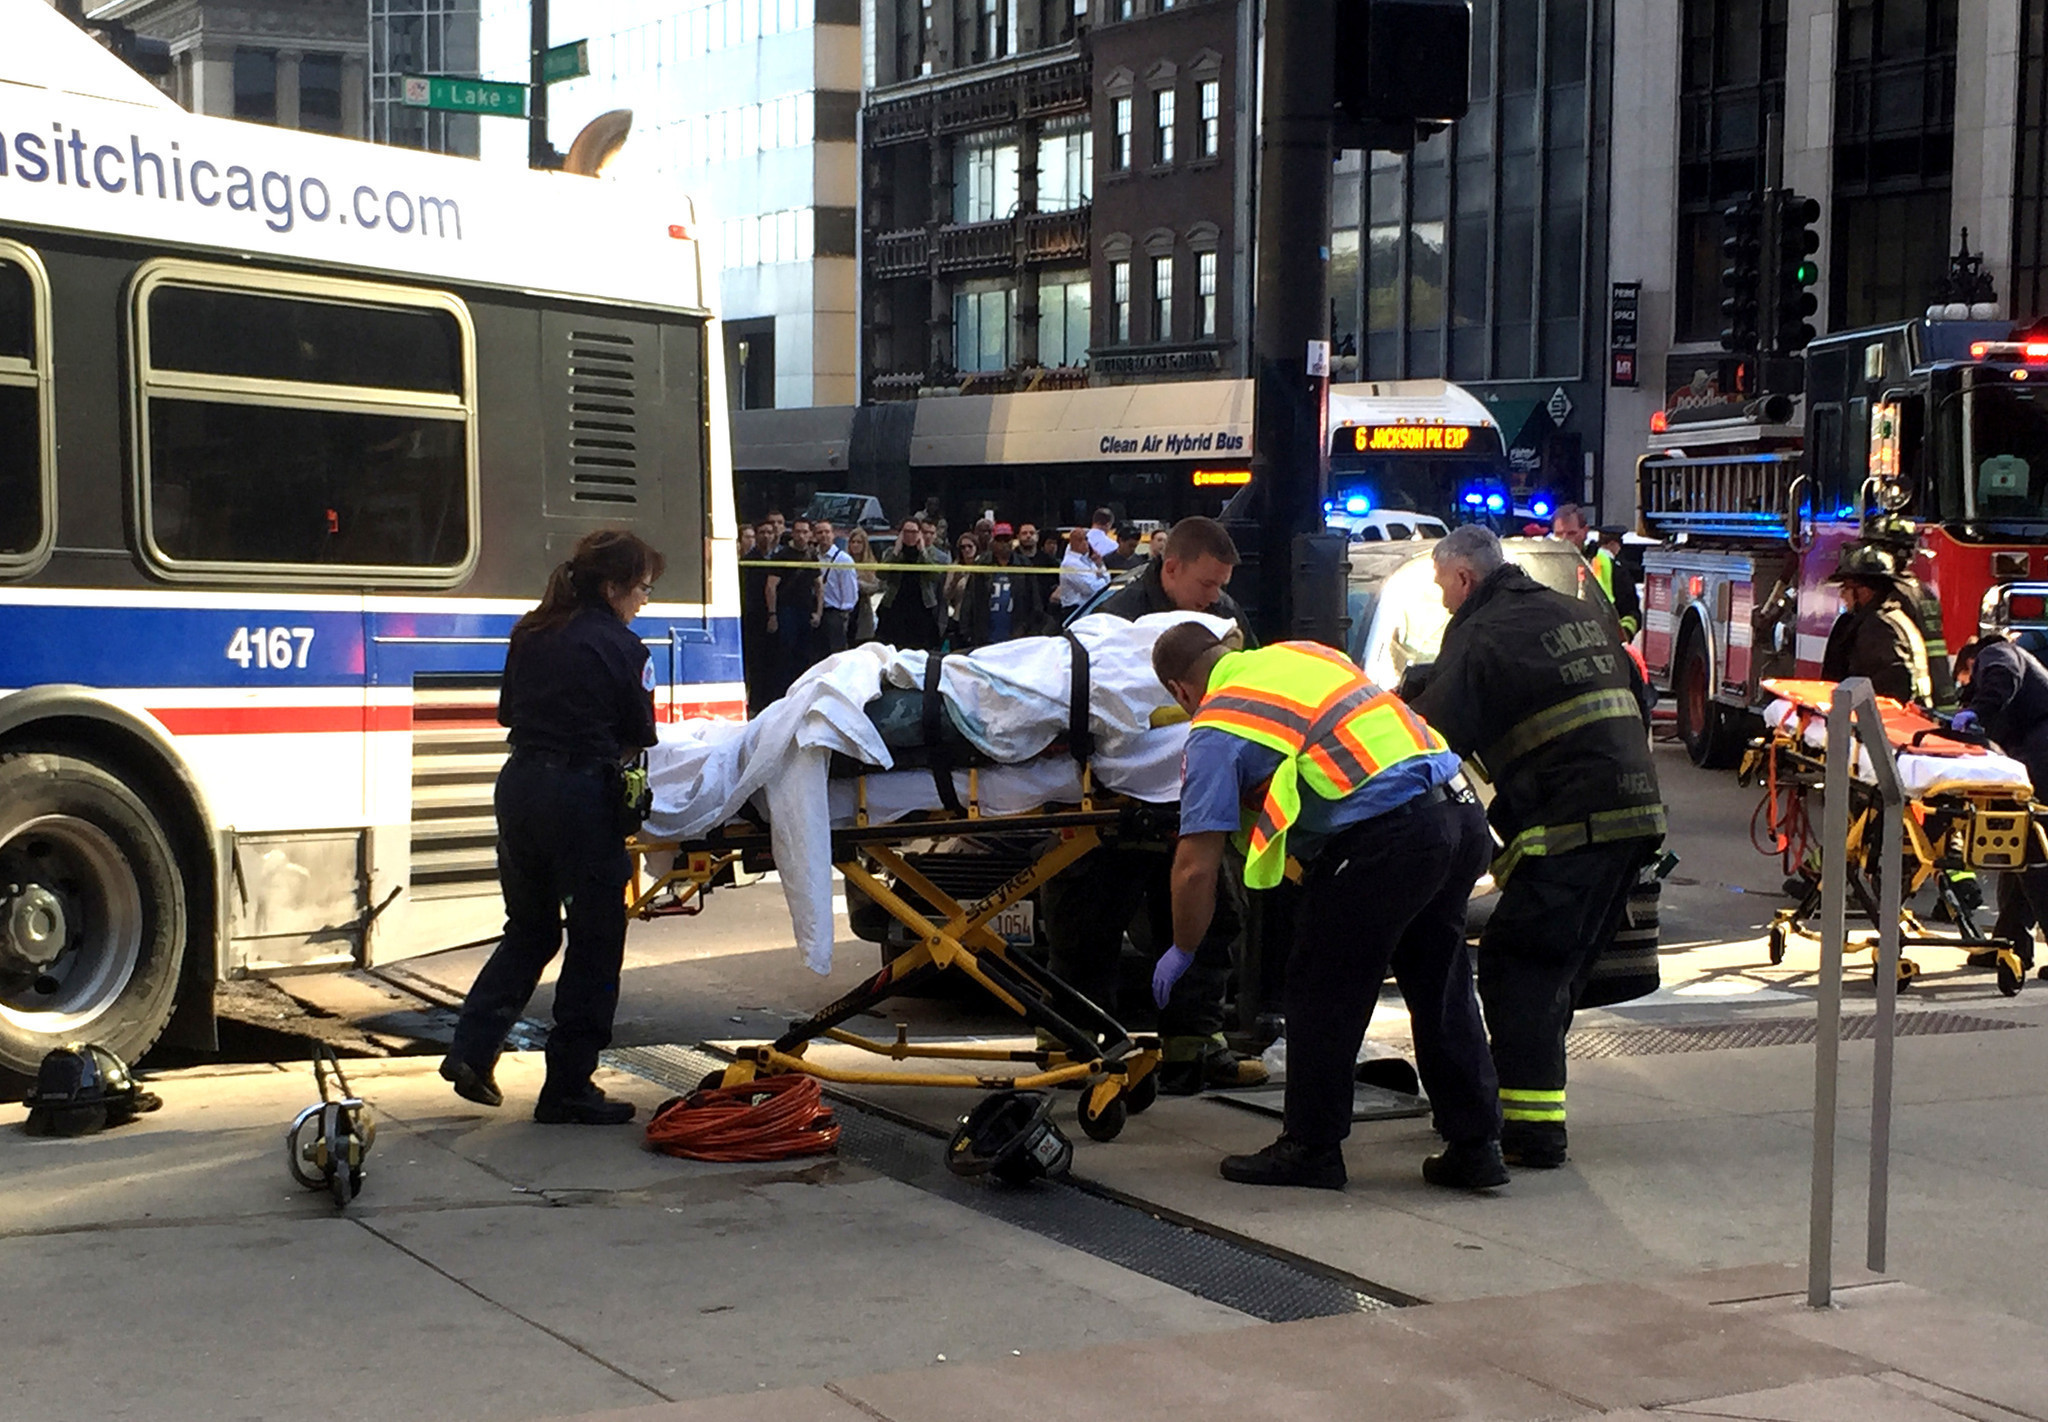 cta to overhaul bus driver training after fatal crash chicago cta to overhaul bus driver training after fatal crash chicago tribune